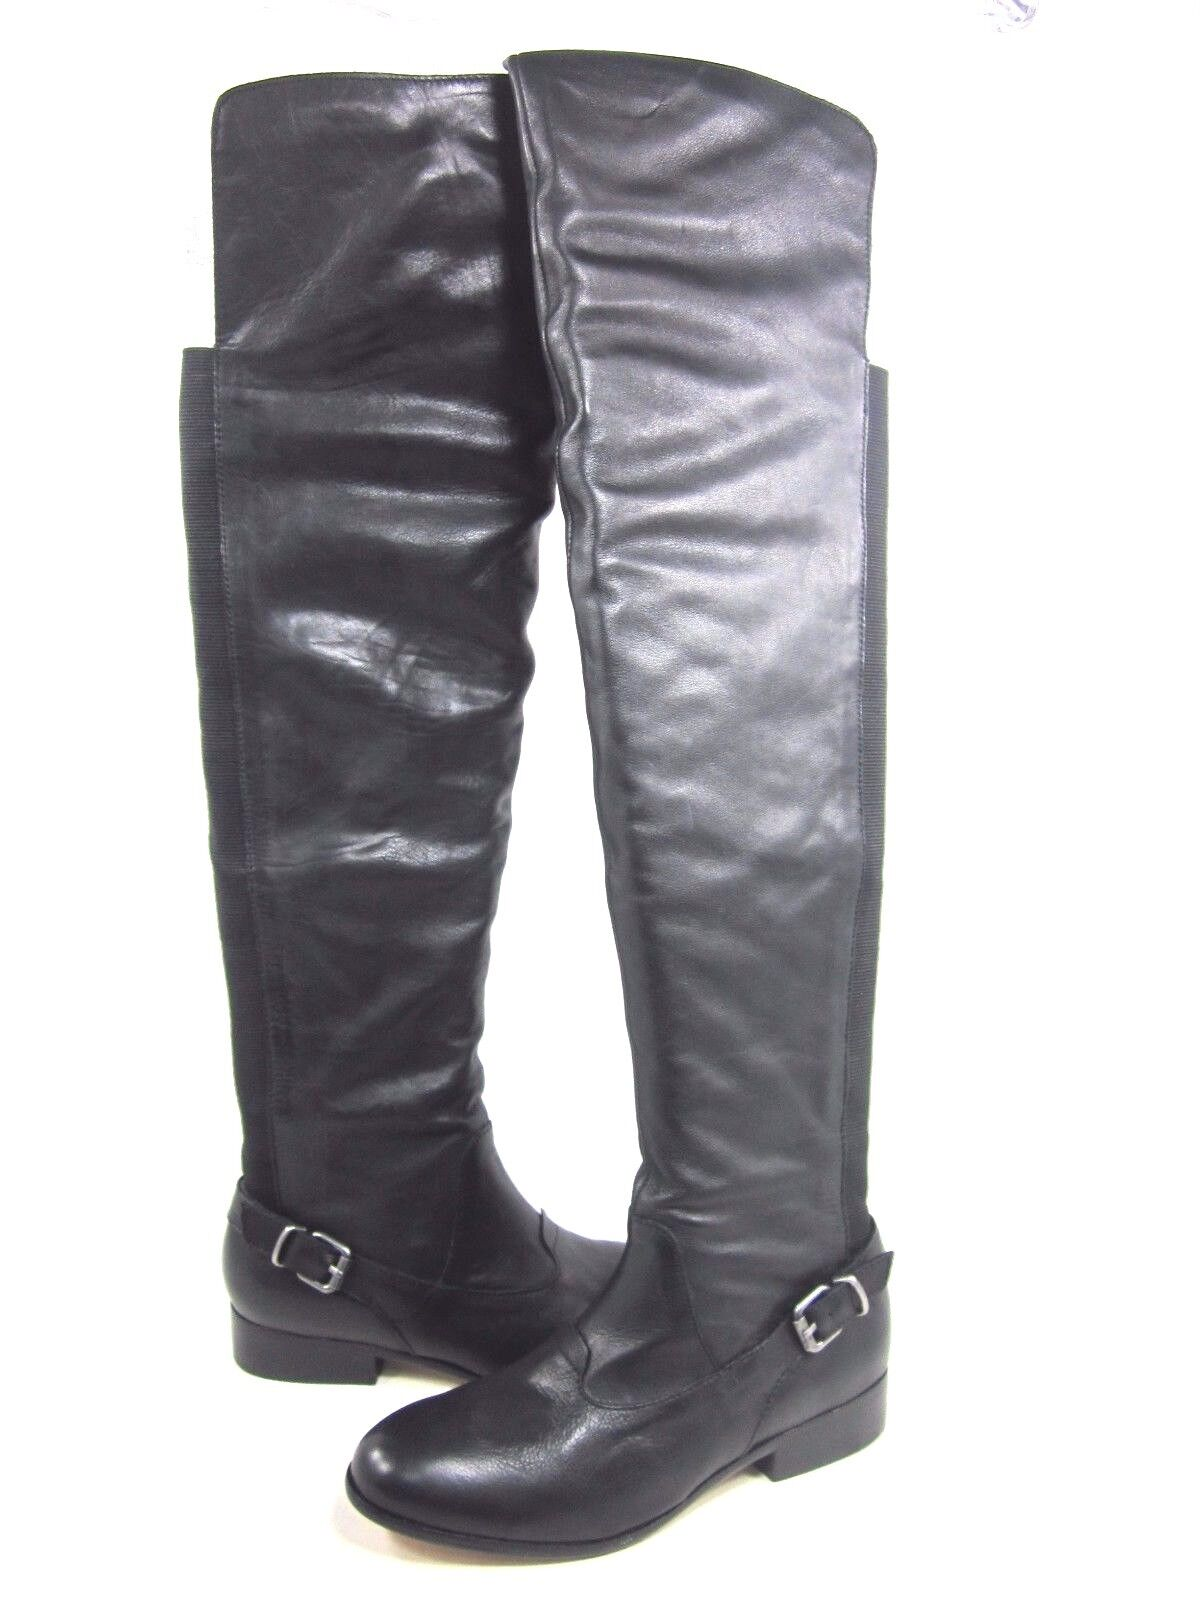 DOLCE VITA WOMEN'S DAVIE, OVER THE KNEE LEATHER BOOTS, BLACK, US SIZE 7.5 MEDIUM